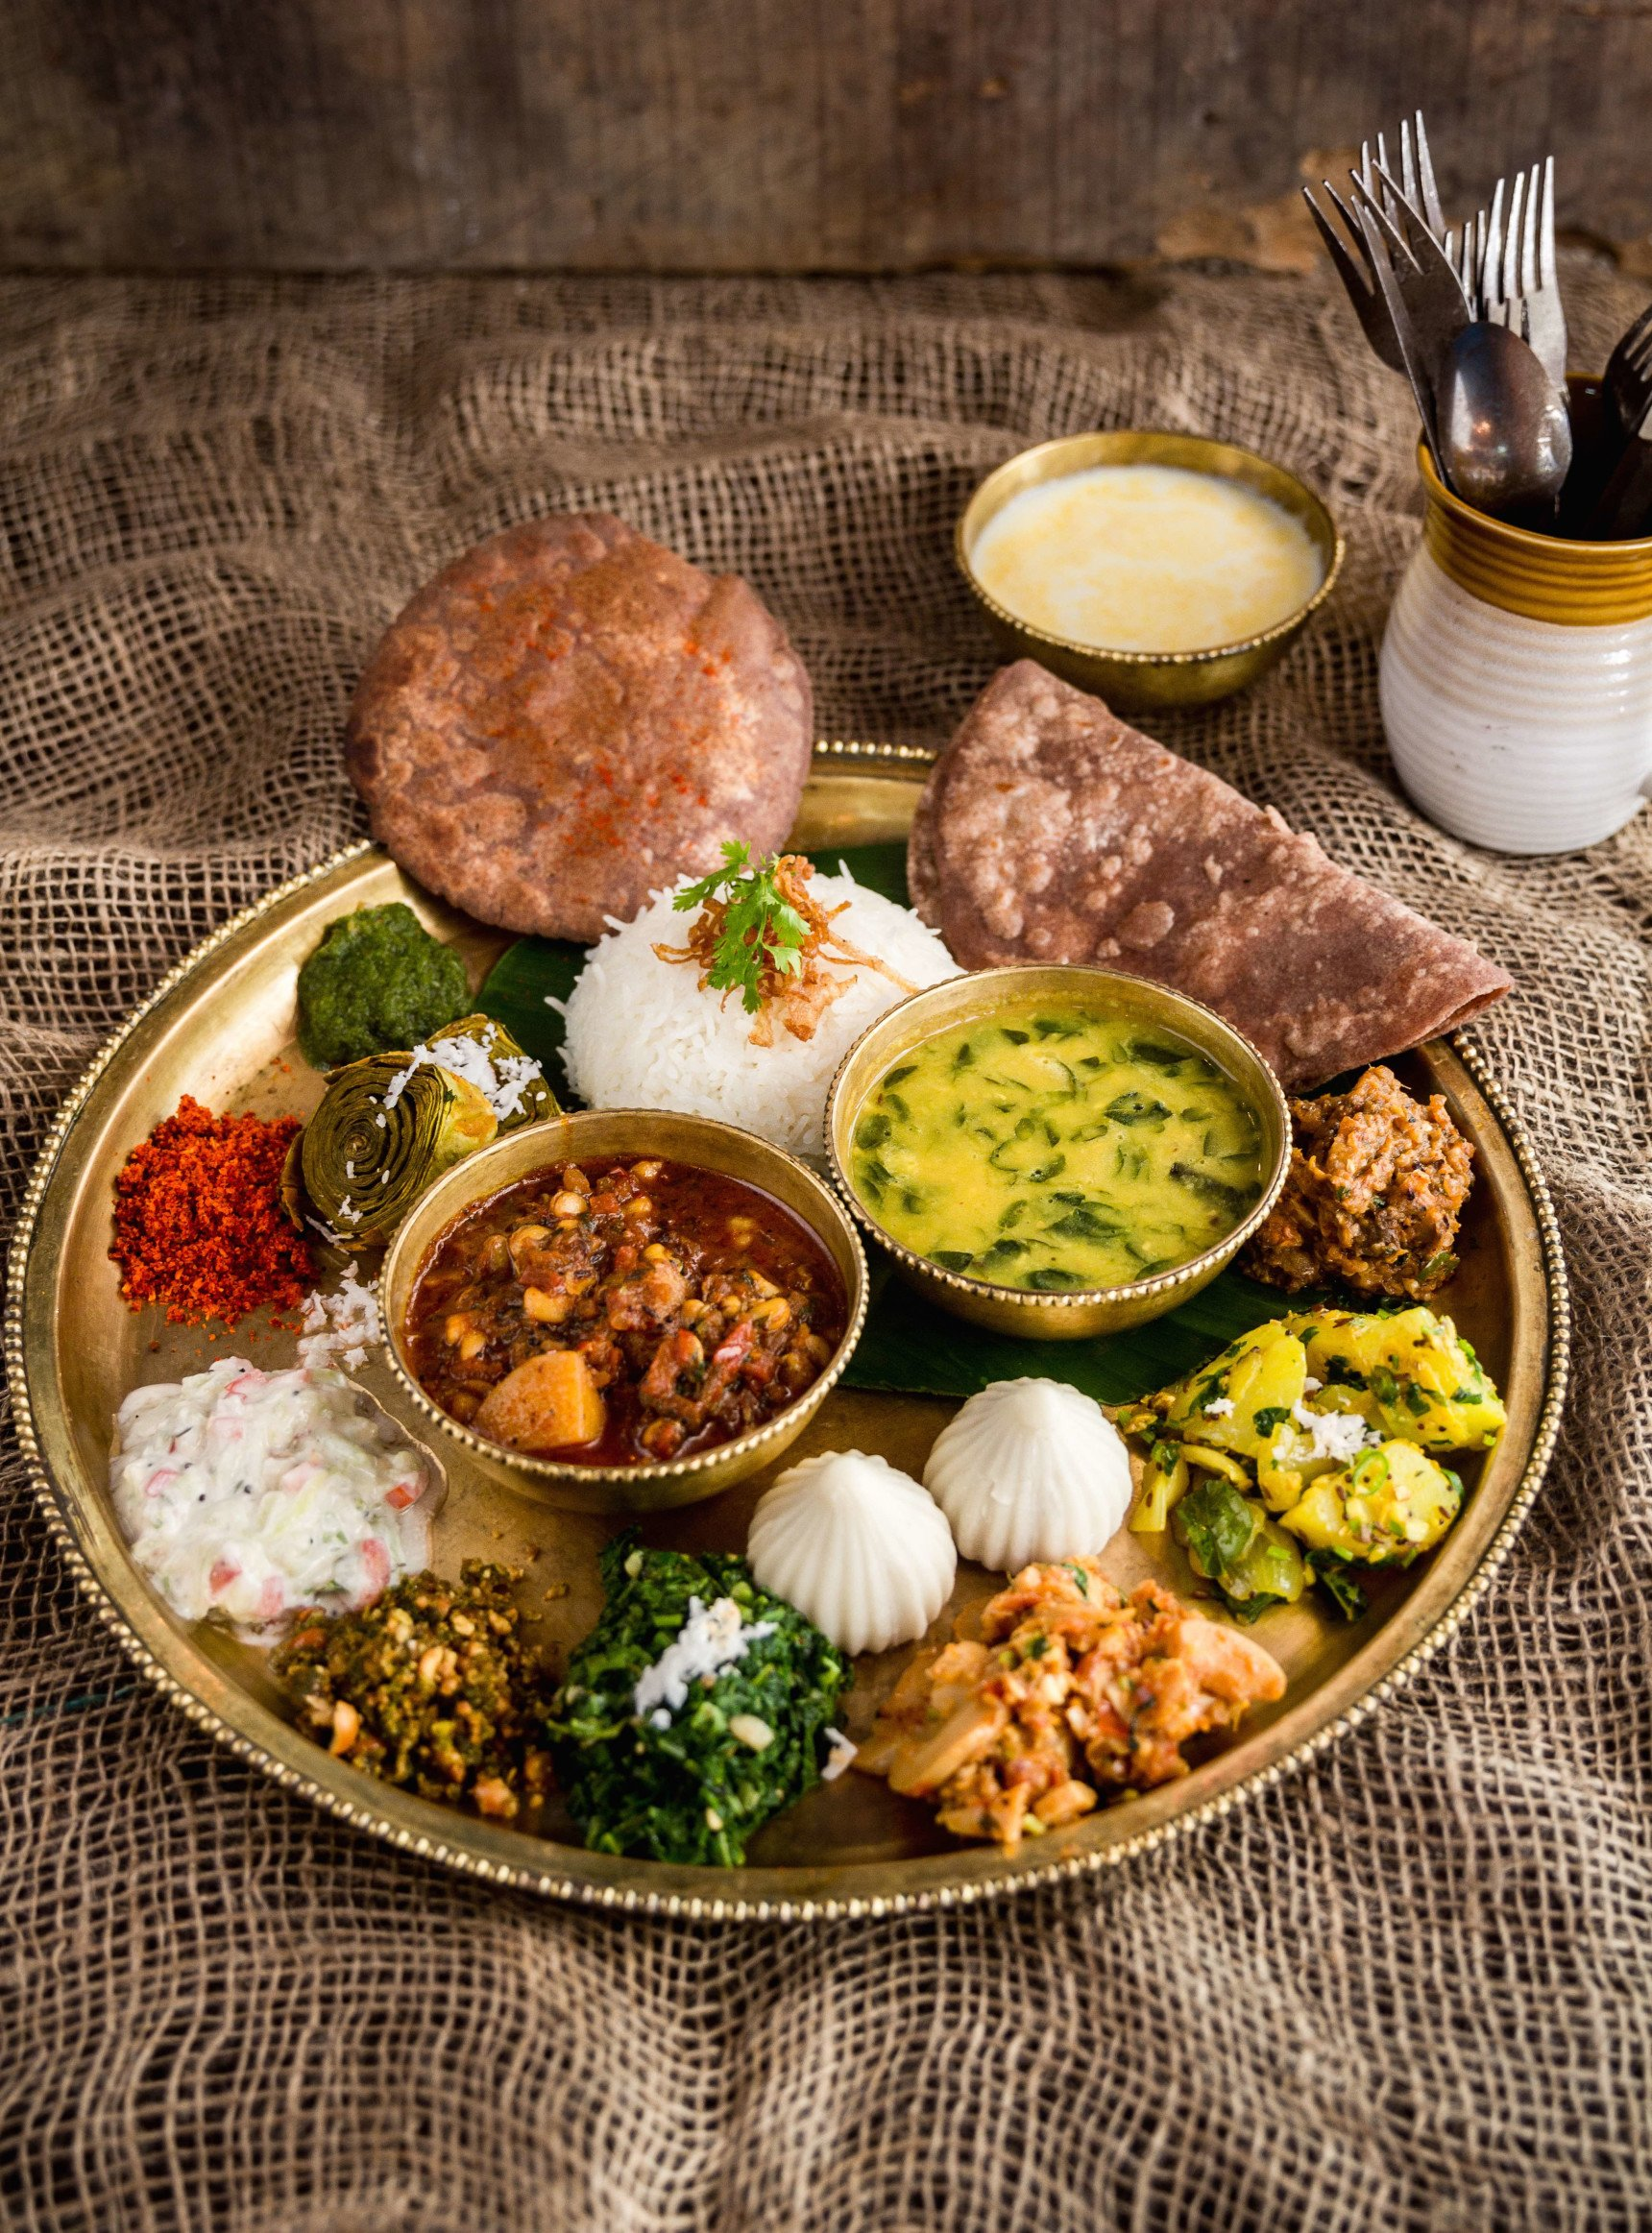 The Wild Side of Bombay: SodaBottleOpenerWala's Seasonal Menu Using Recipes of Varli Tribals